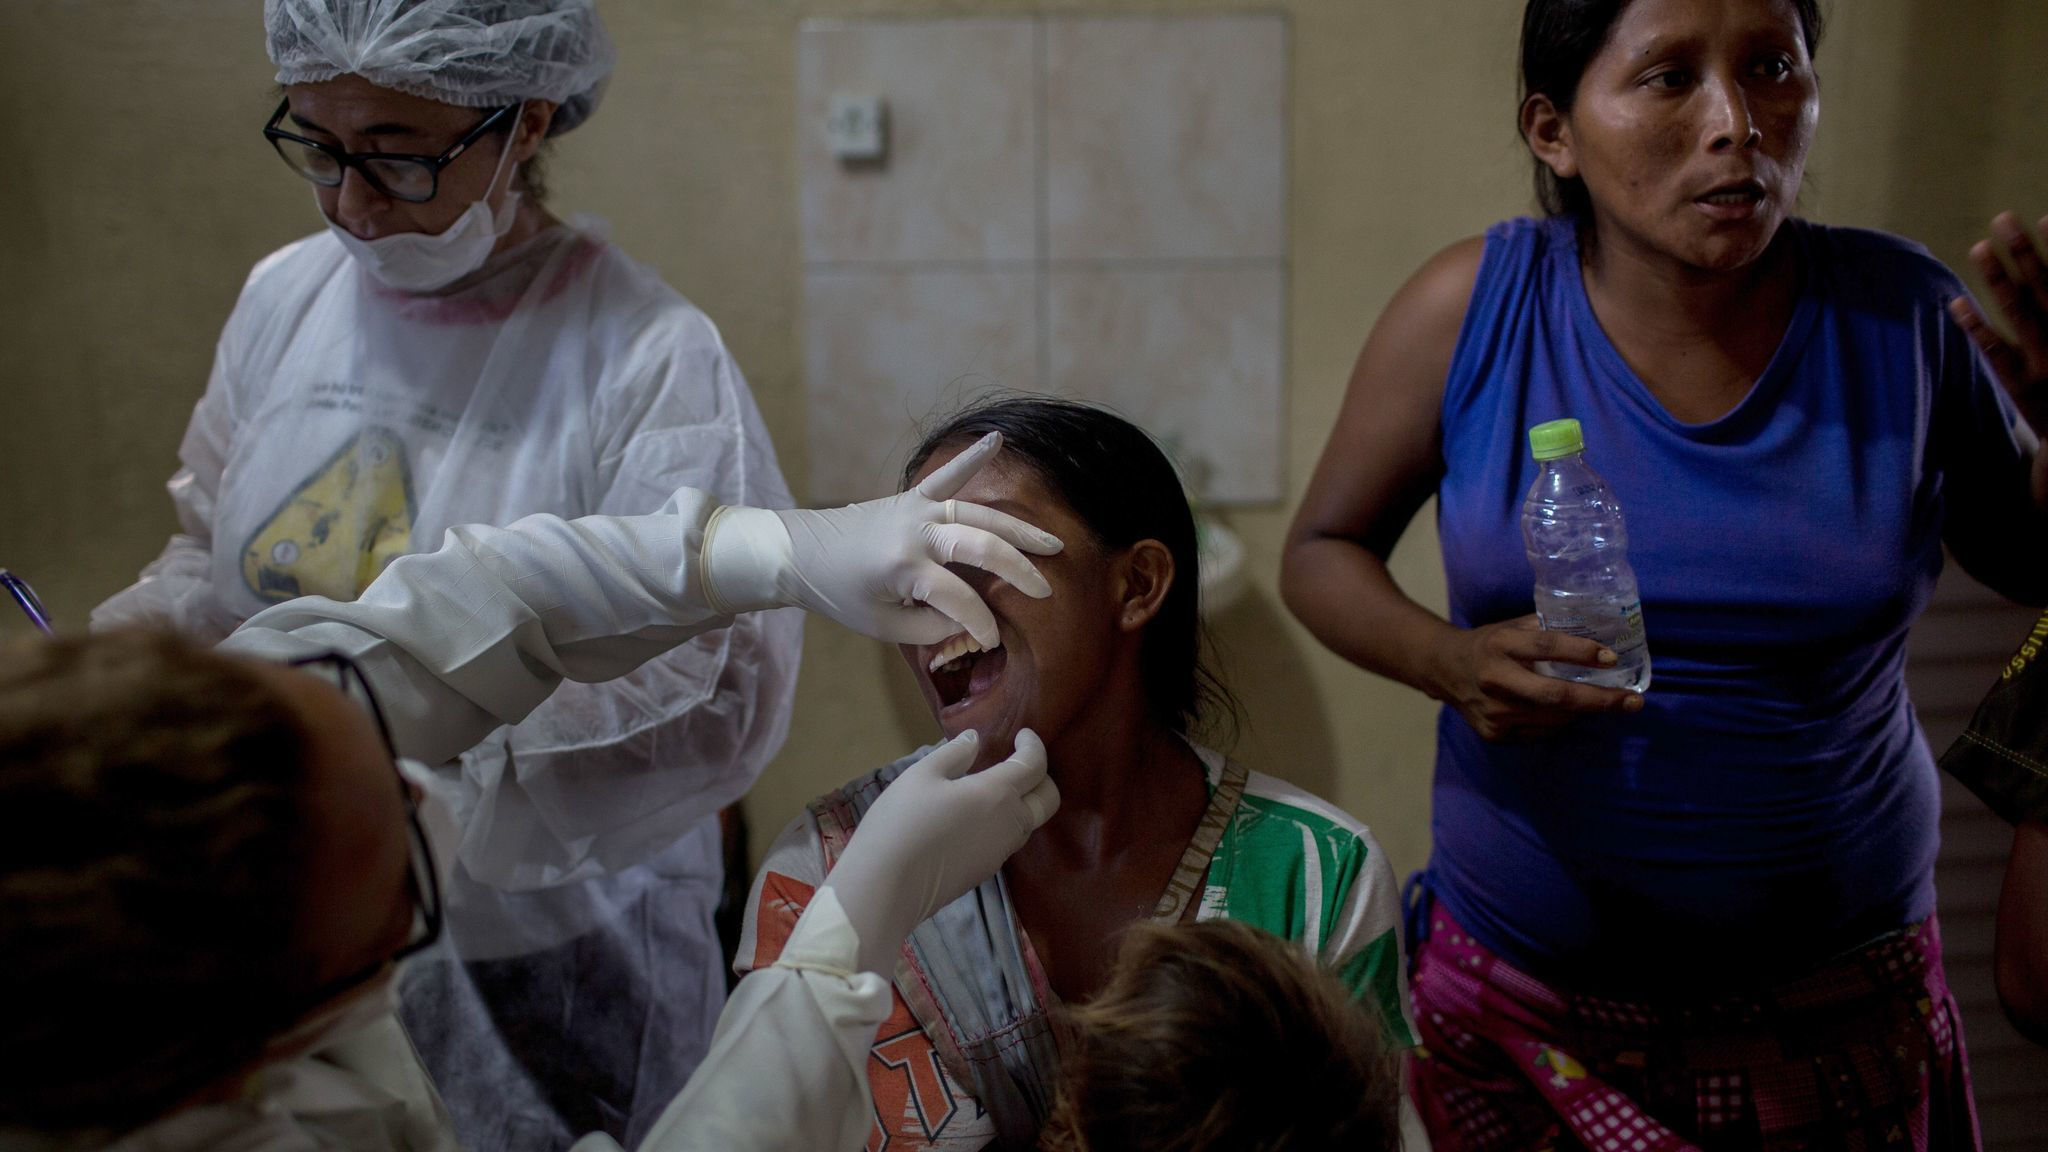 The prefecture of Manaus has set up a health clinic so Warao Indians can get medical examinations.